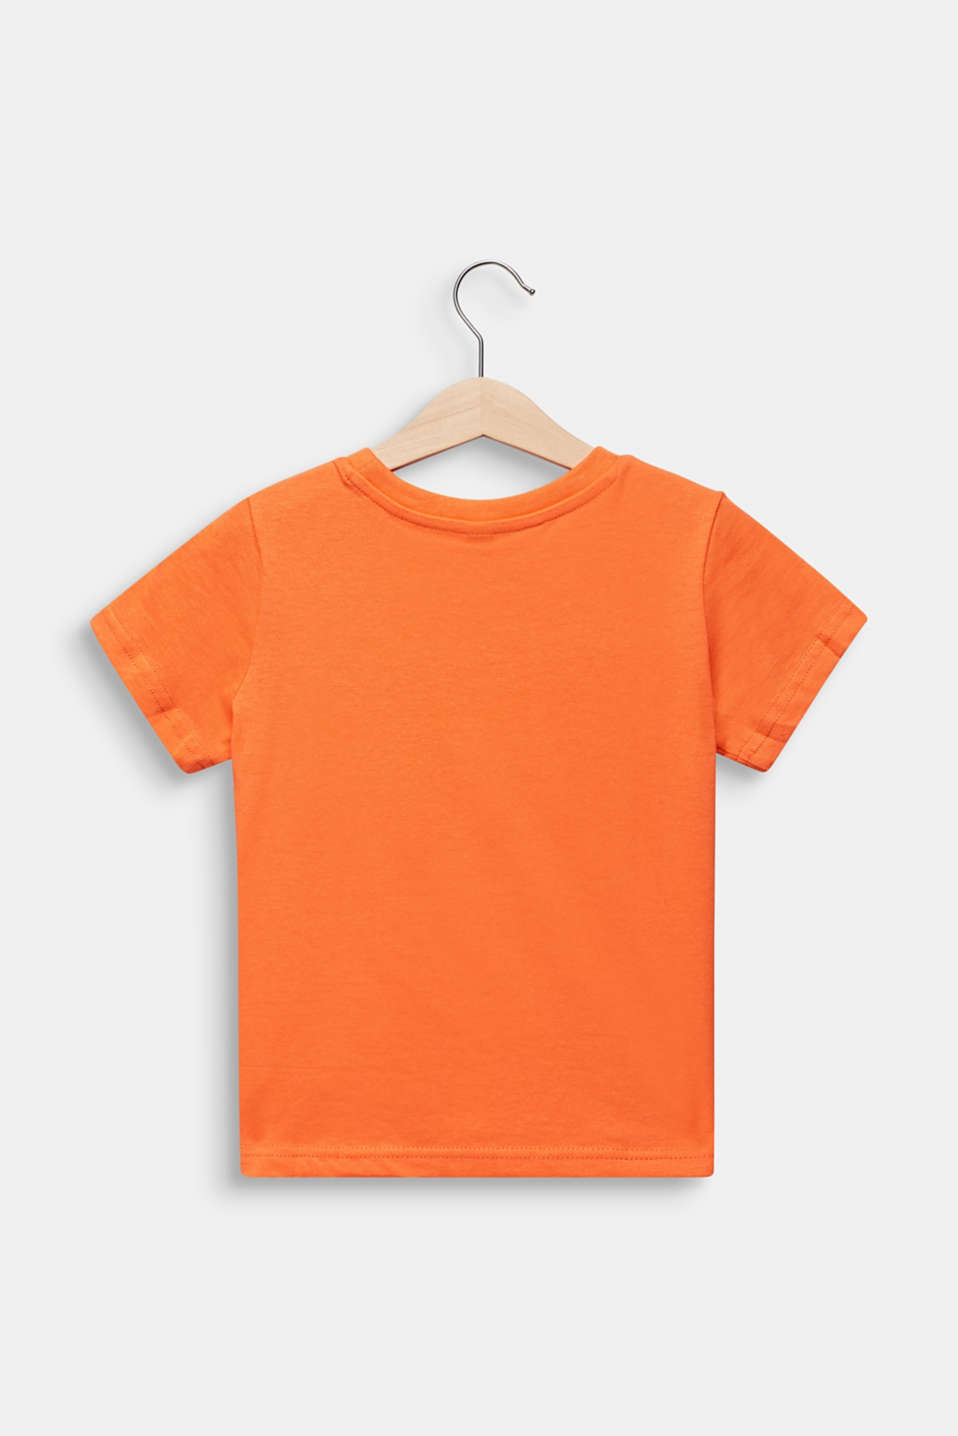 Statement T-shirt made of 100% cotton, SUNNY ORANGE, detail image number 1